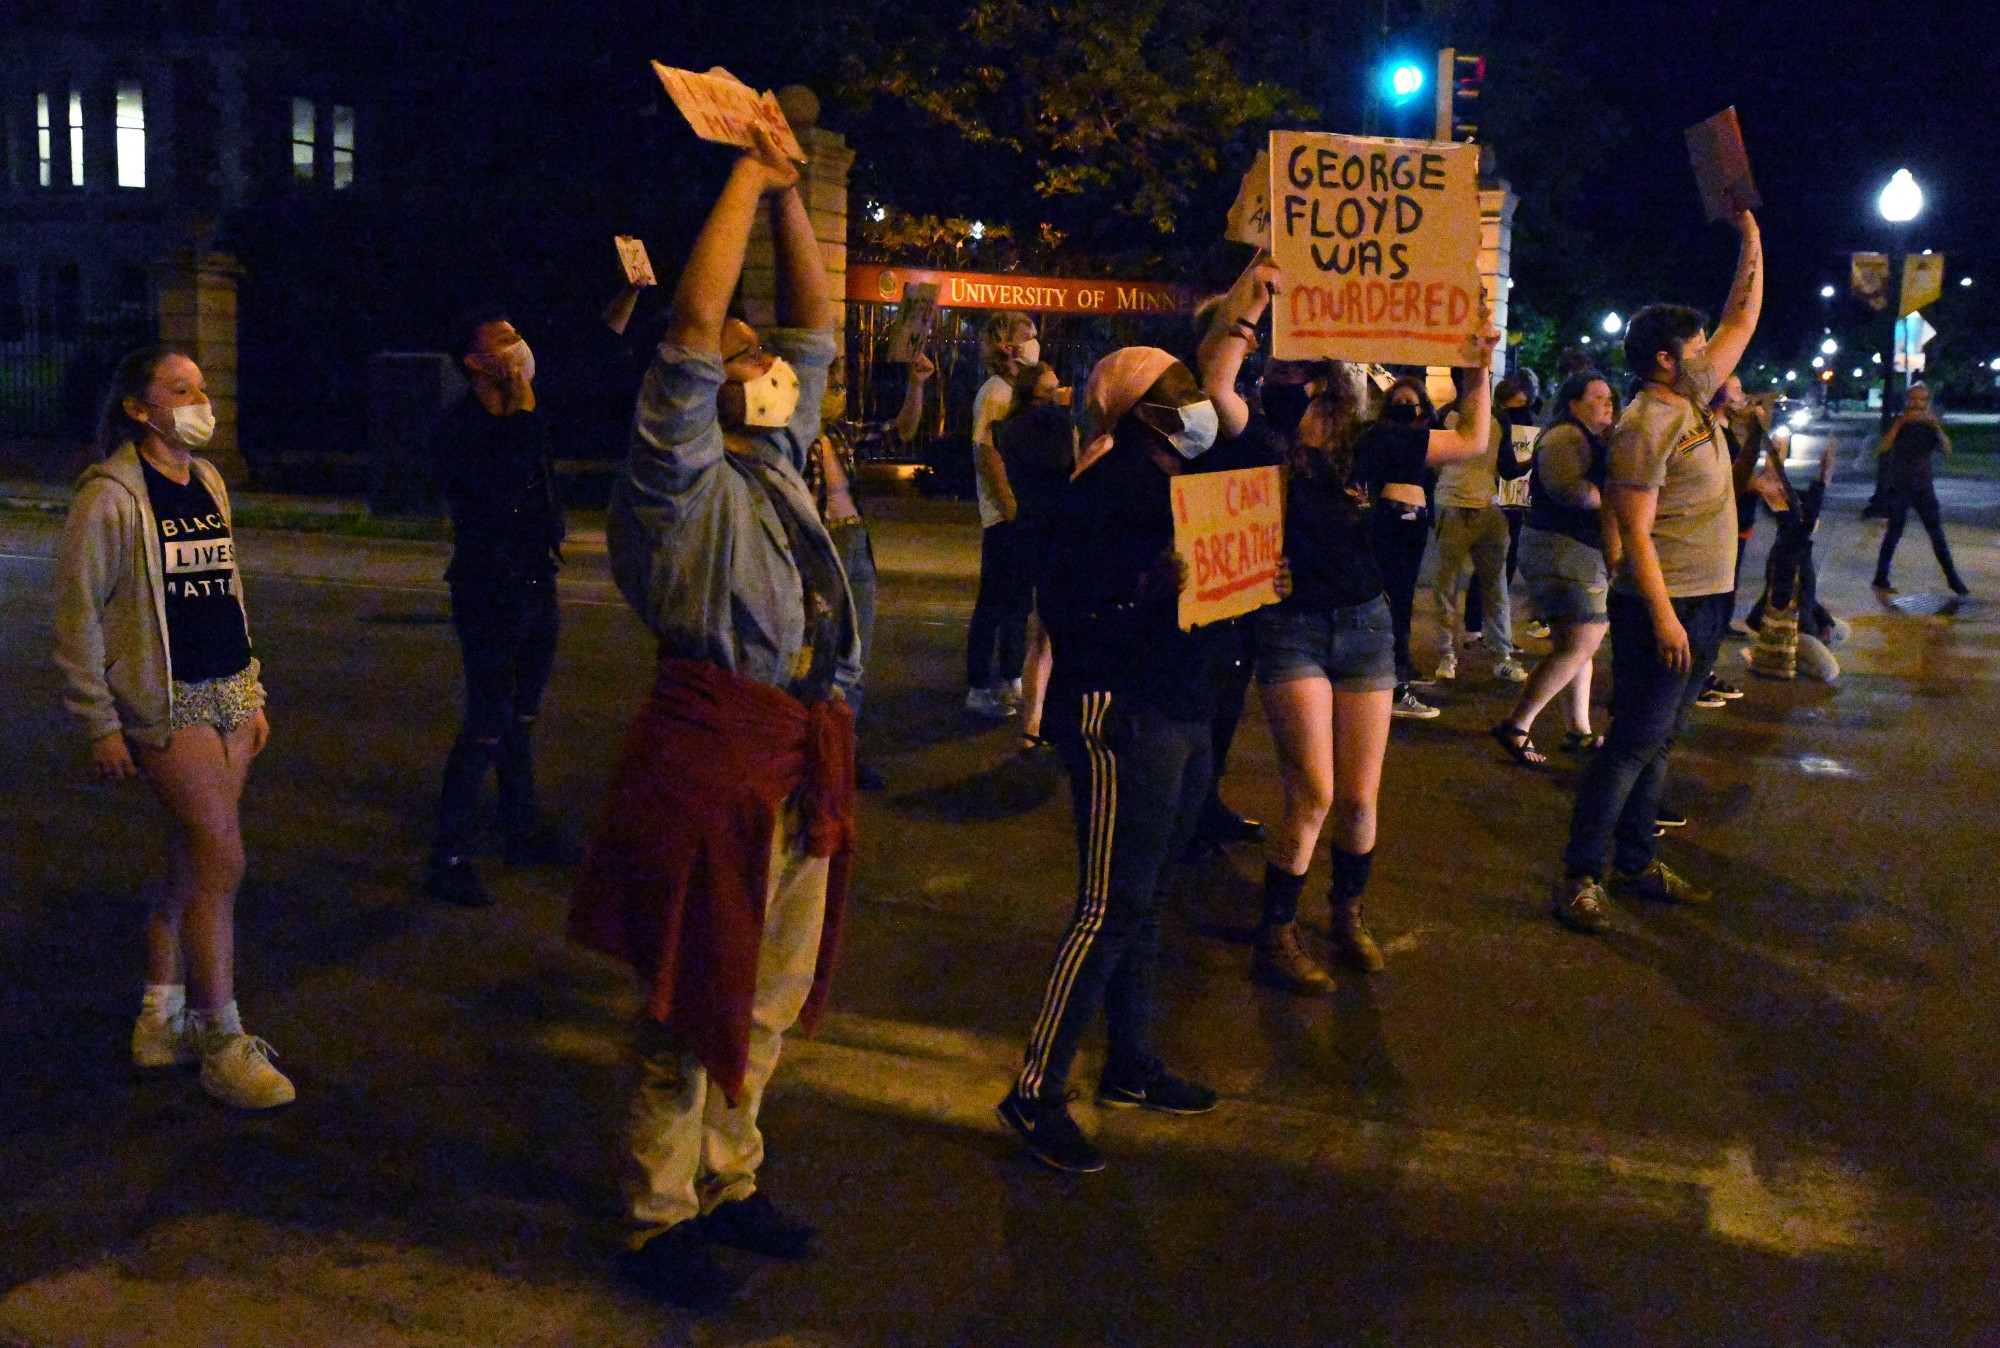 Students block the intersection of SE 15th Ave and SE University Ave in Dinkytown on Thursday, May 28 as part of a protest against police brutality following the death of George Floyd on Monday.